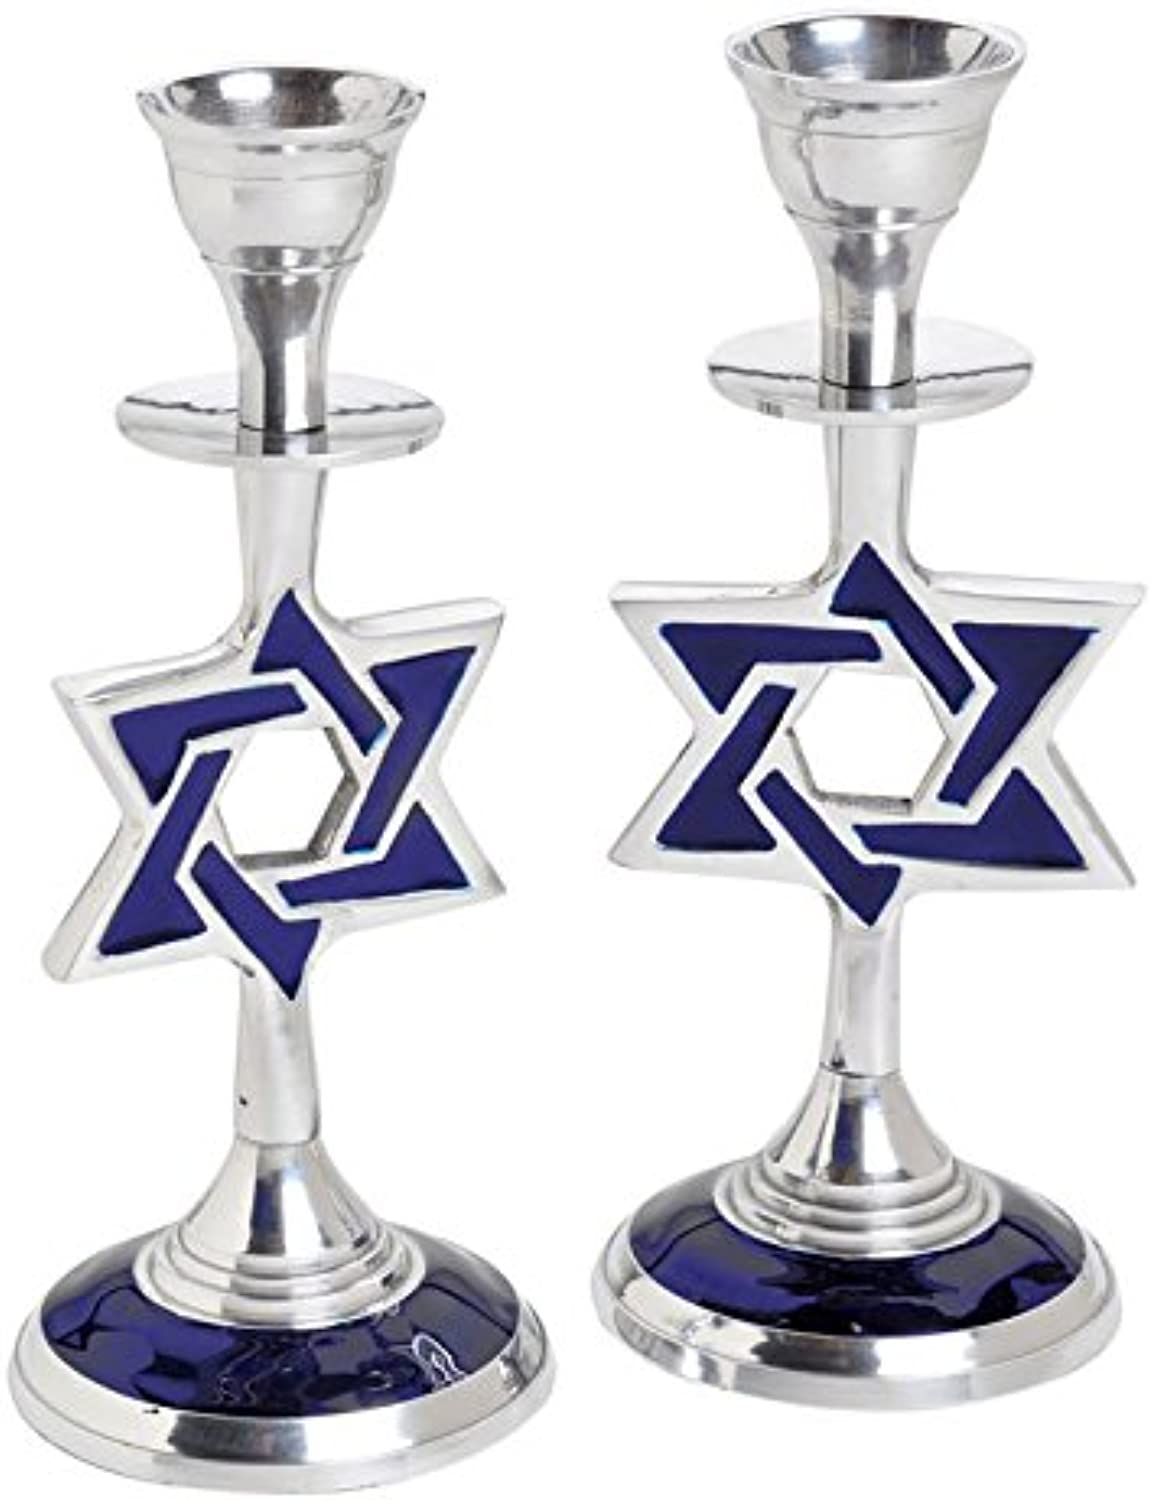 bluee Enamel Star of David Aluminum Shabbat Candlesticks   Set of 2